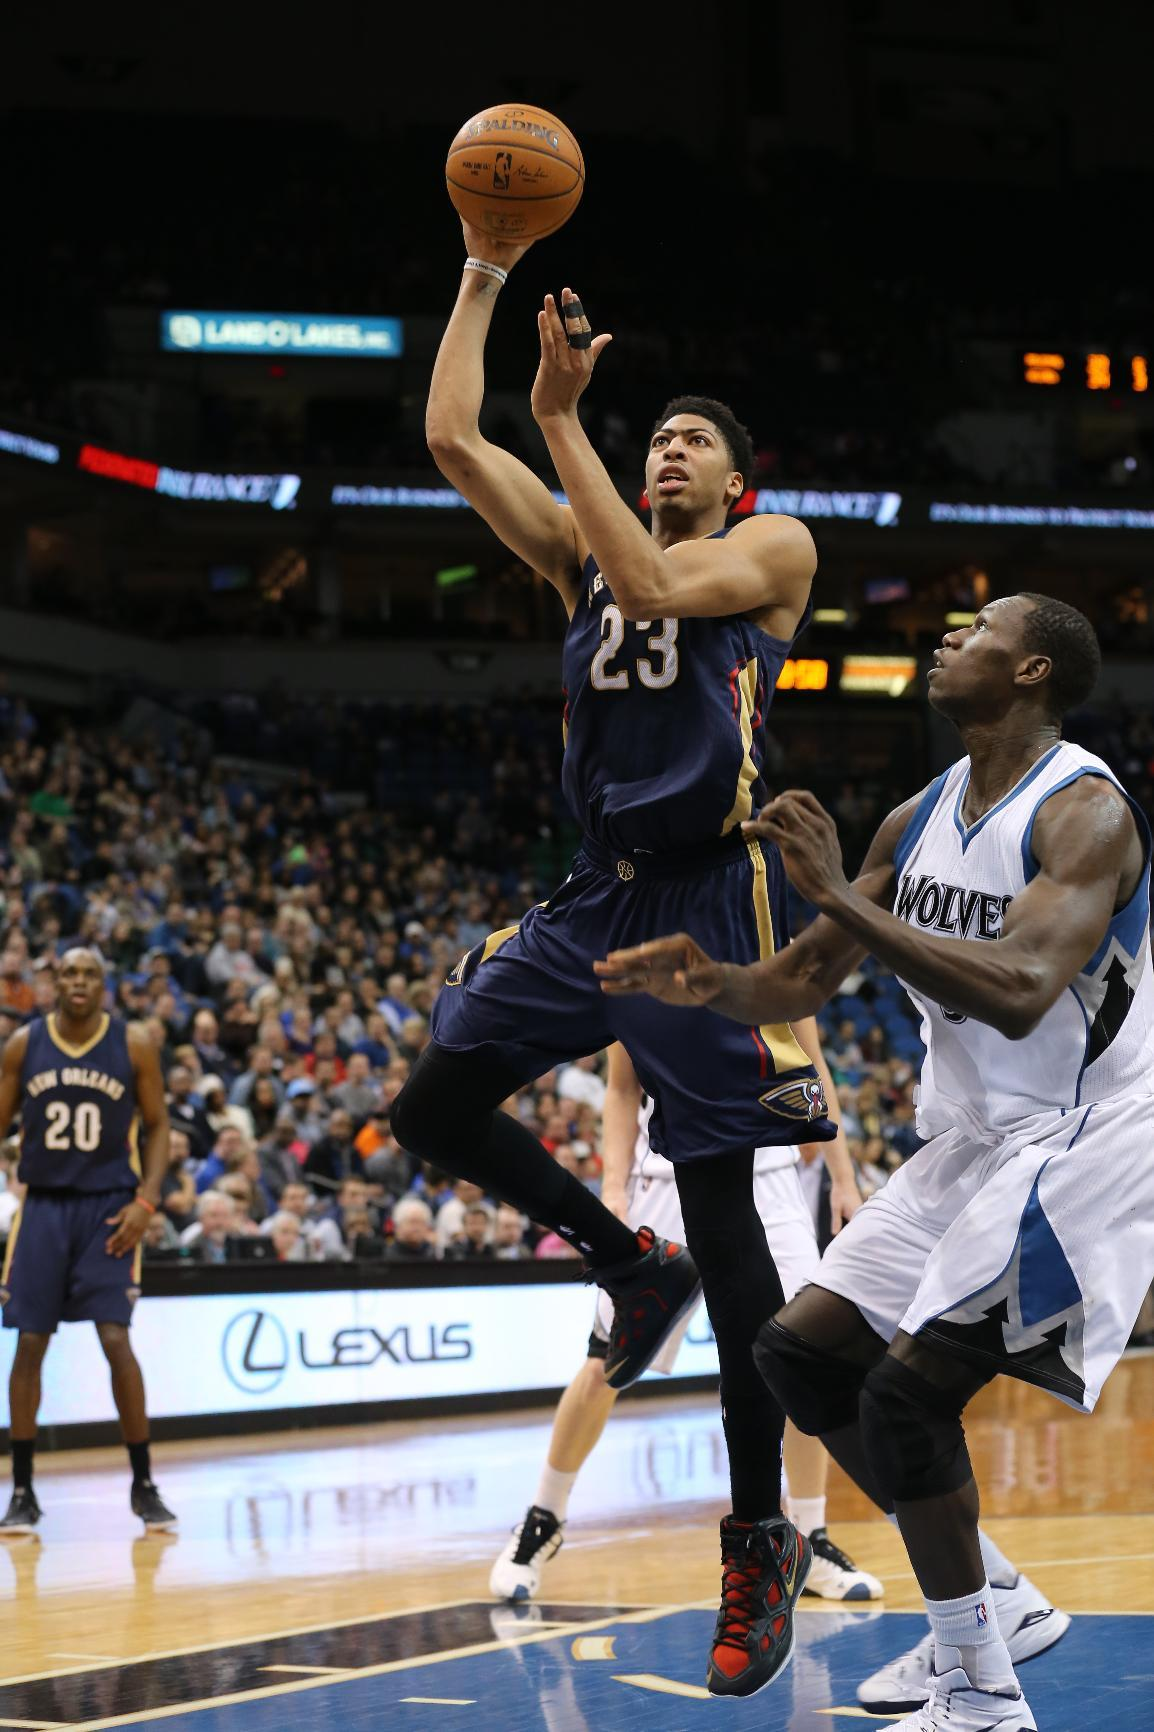 Davis, Pelicans grind out win over Timberwolves, 92-84